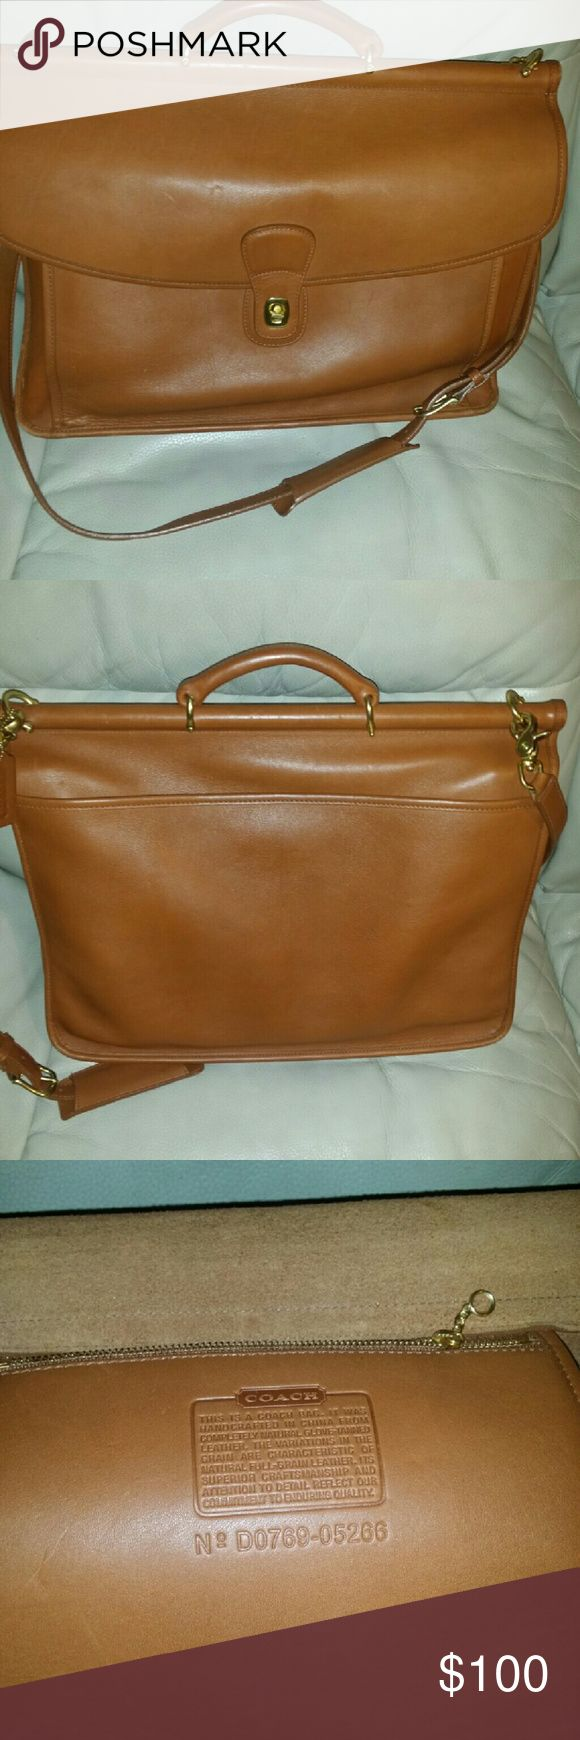 Coach briefcase Great used condition coach briefcase. price negotiable!! Coach Bags Crossbody Bags